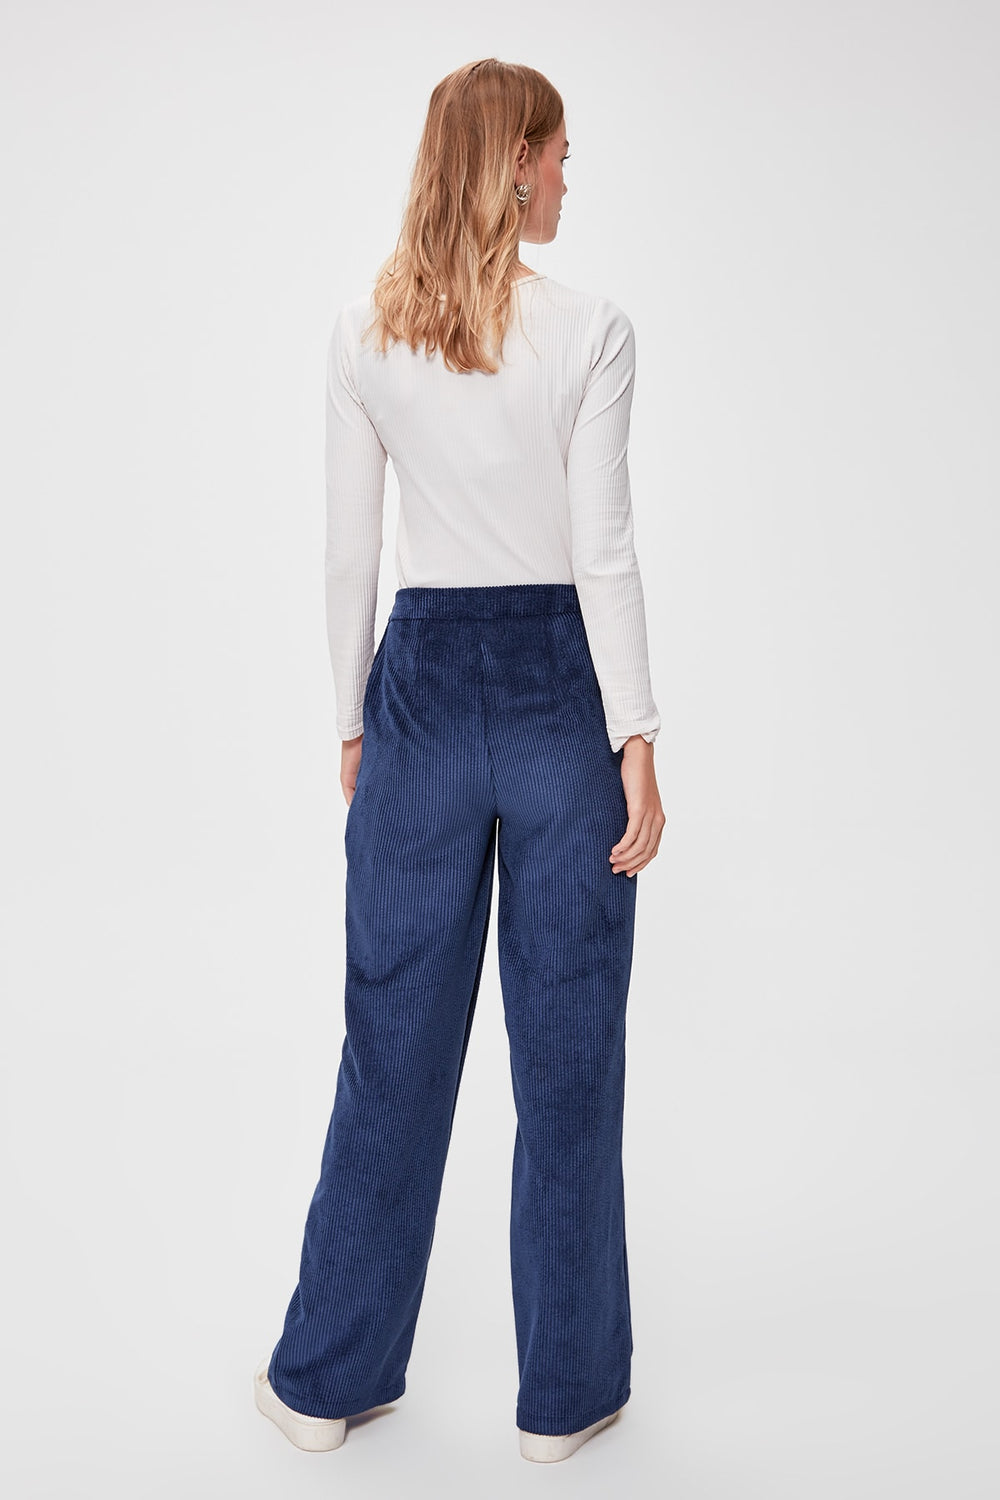 Miss Zut Miss Zut Flare Pants Miss Zut &CO